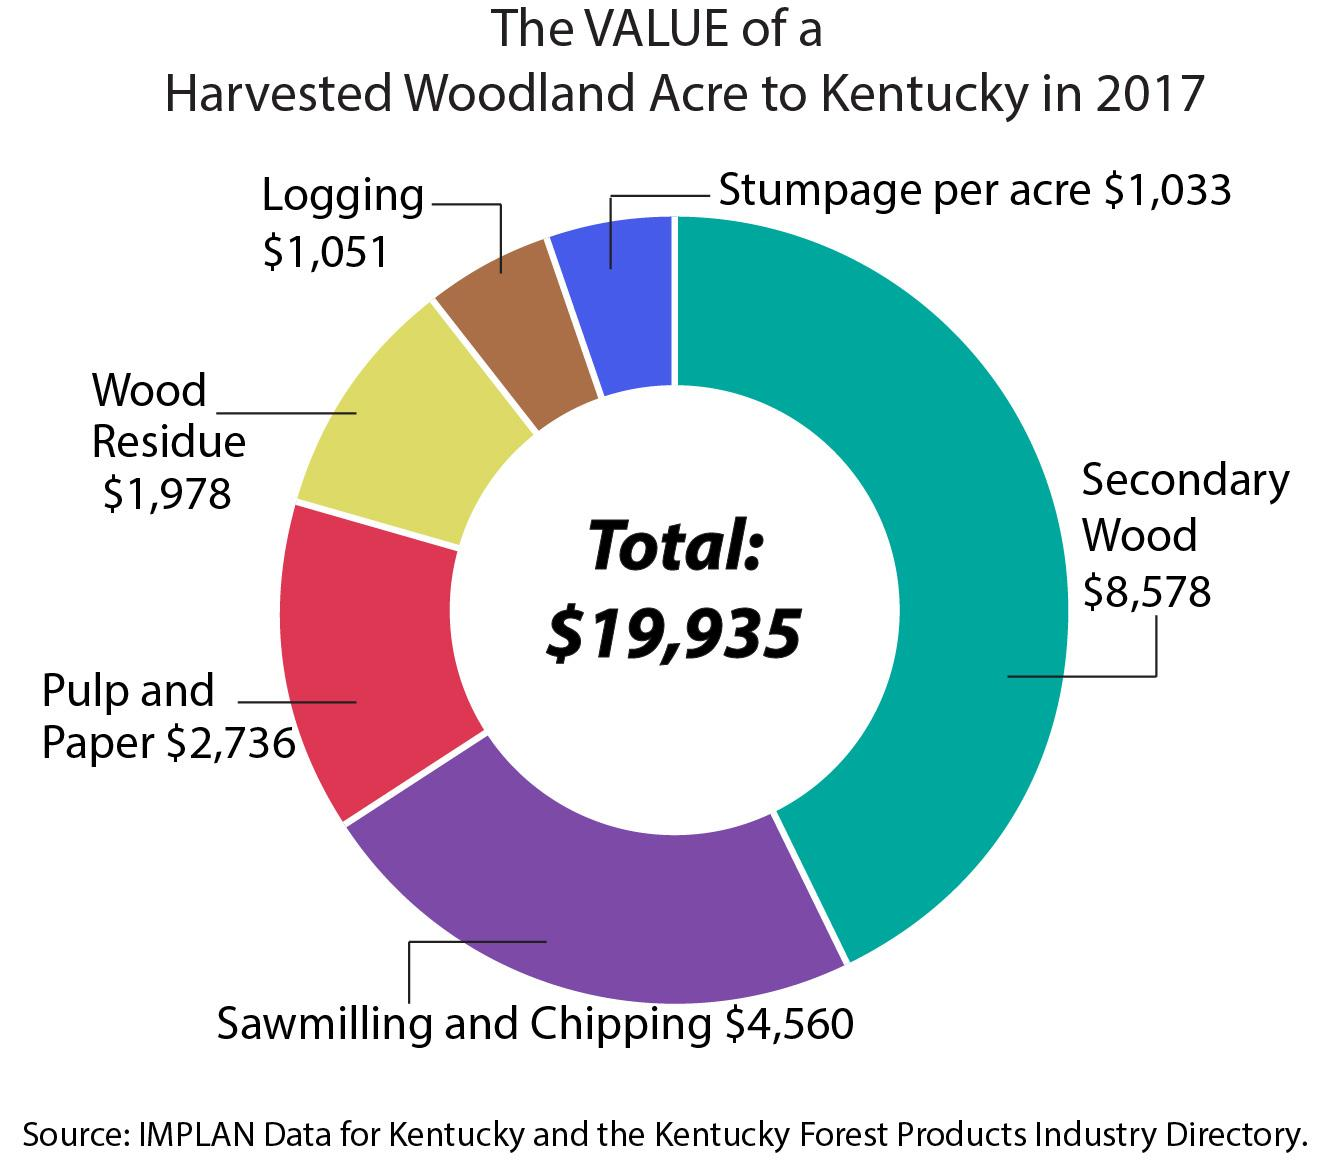 The Value of a Harvested Woodland Acre to Kentucky in 2017